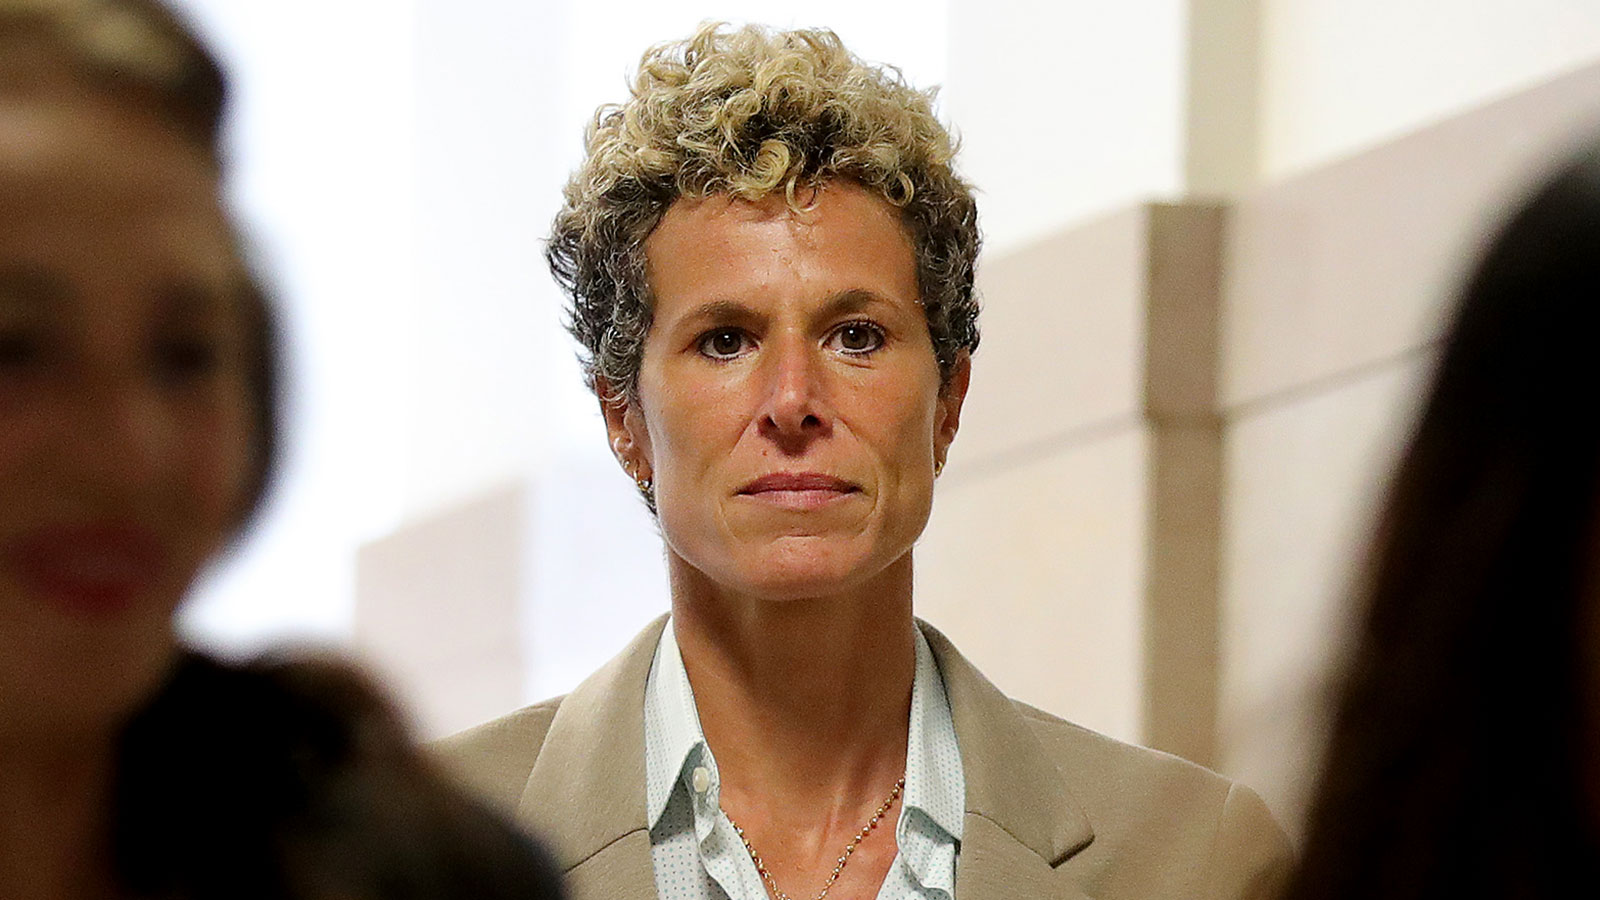 Andrea Constand attends Bill Cosby's sentencing hearing in Norristown, Pennsylvania, in 2018.